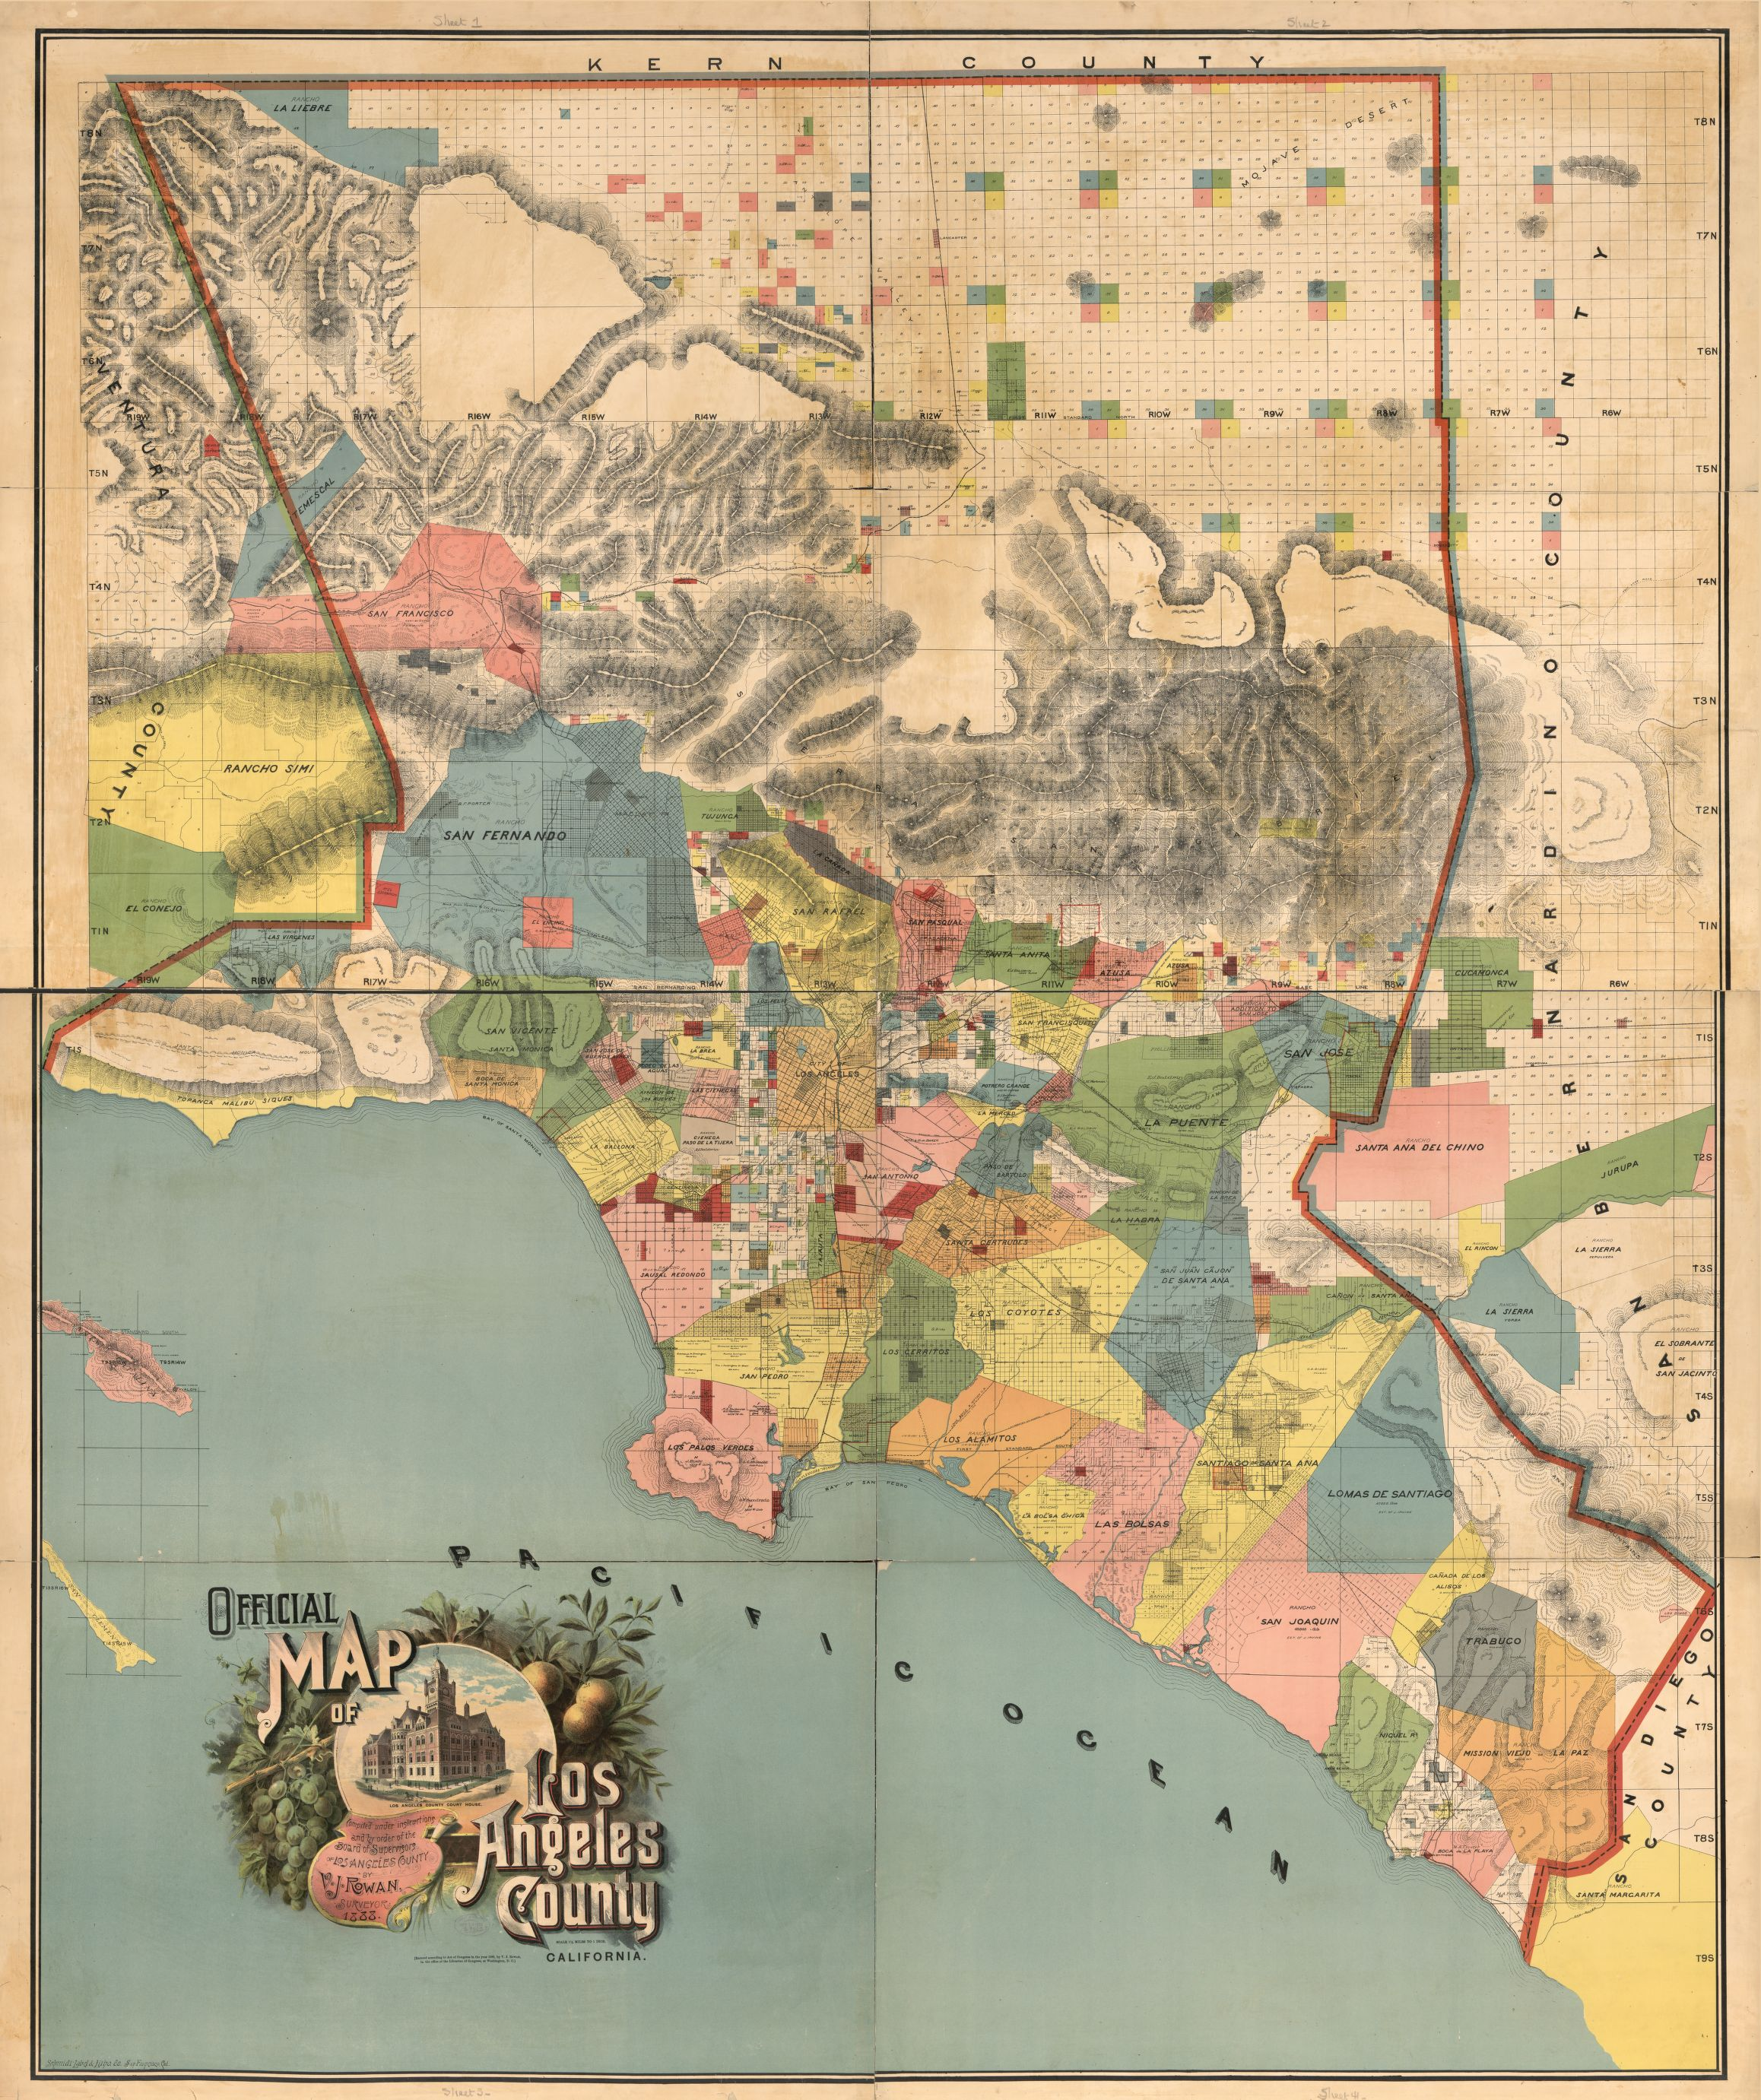 1888 map of Los Angeles County